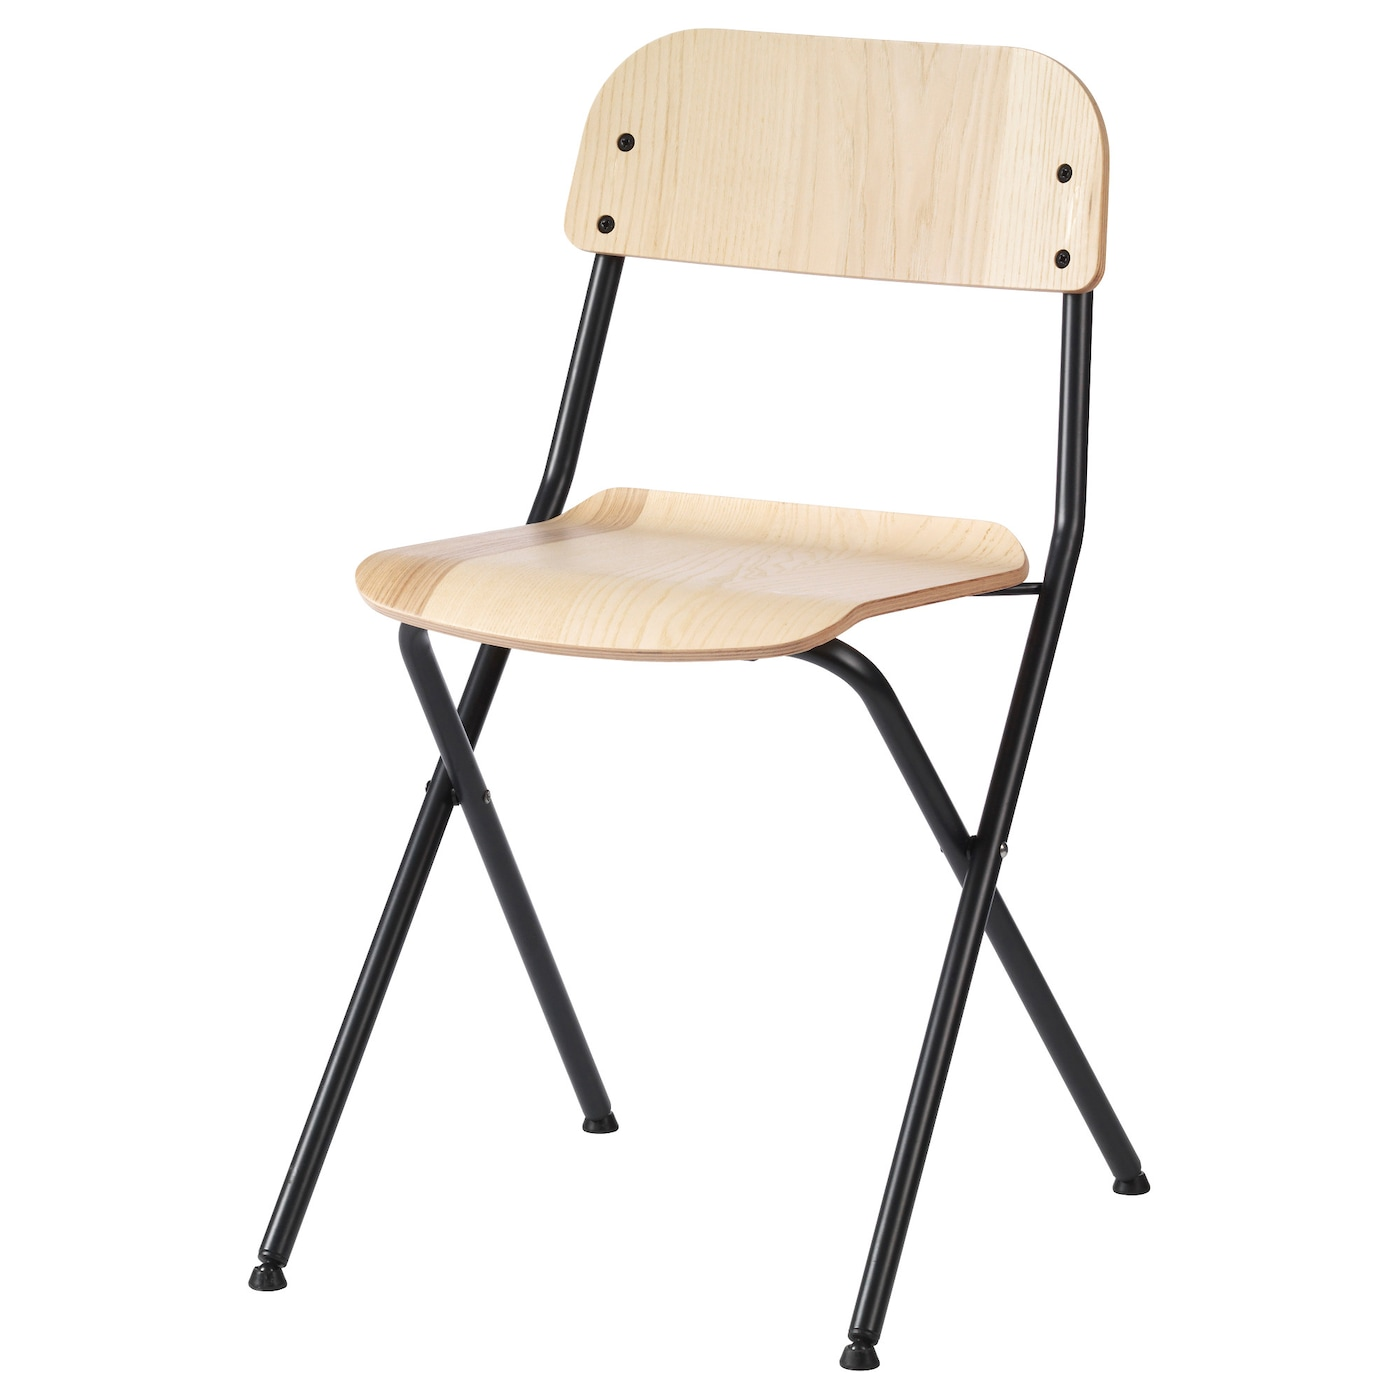 IKEA VÄSSAD folding chair Foldable, which makes it easy to store. No assembly required.